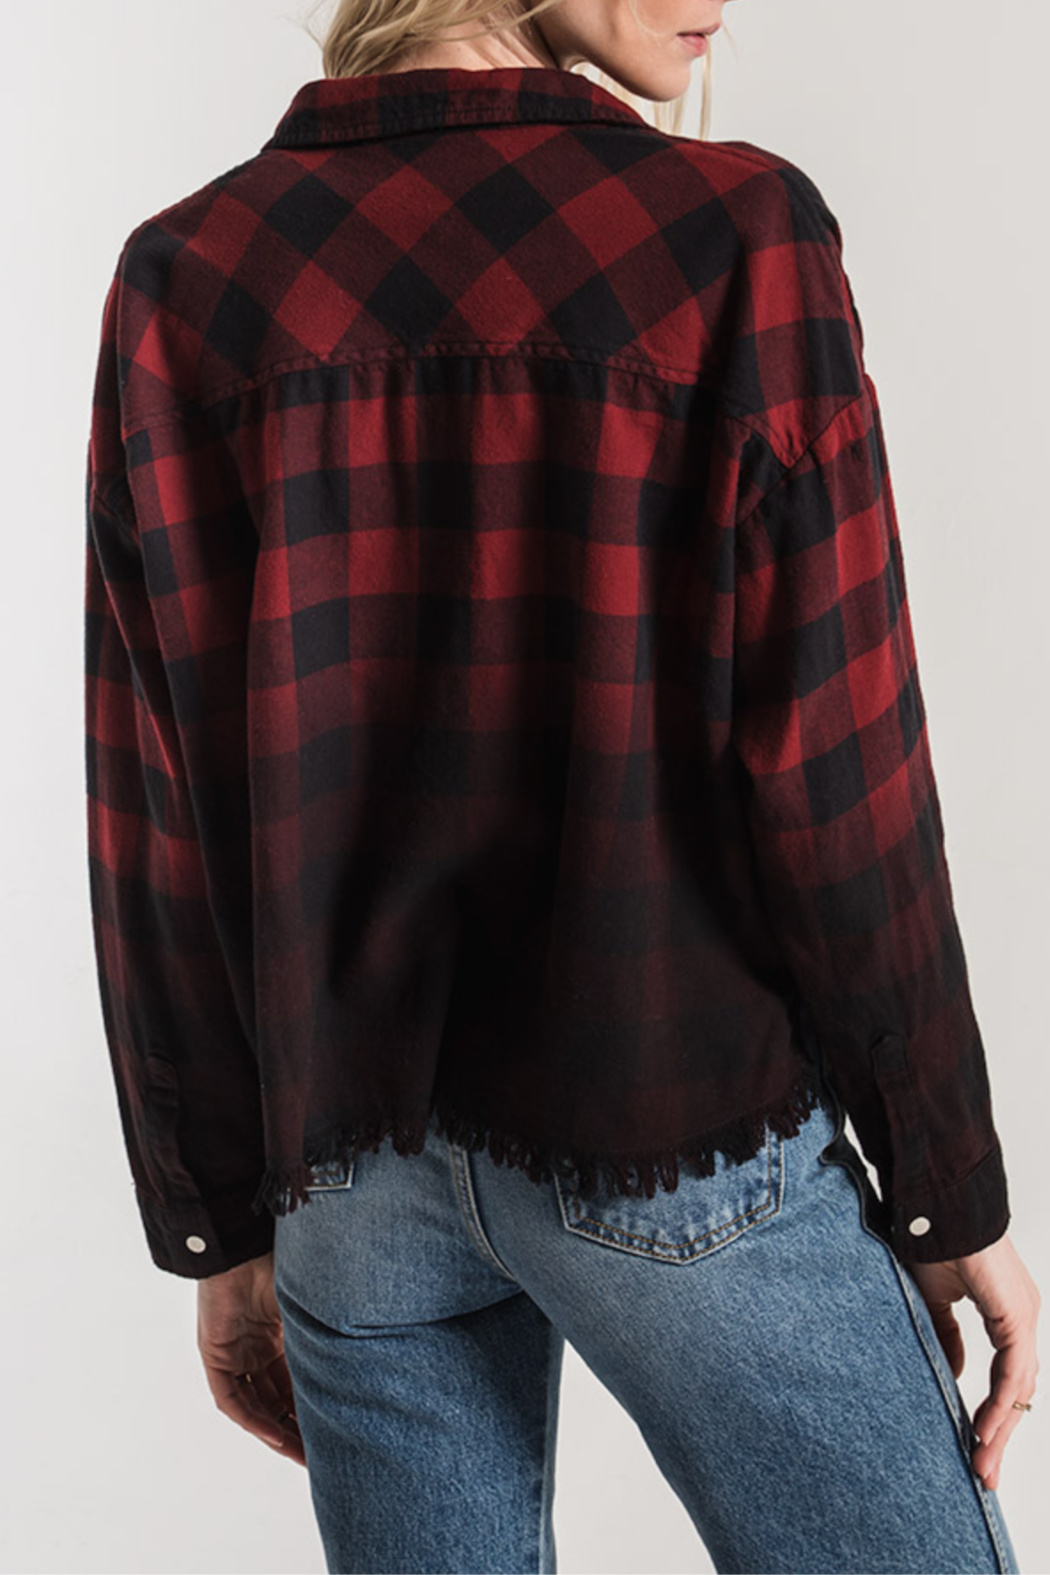 White Crow Benson Flannel Crop Top/Jacket - Side Cropped Image